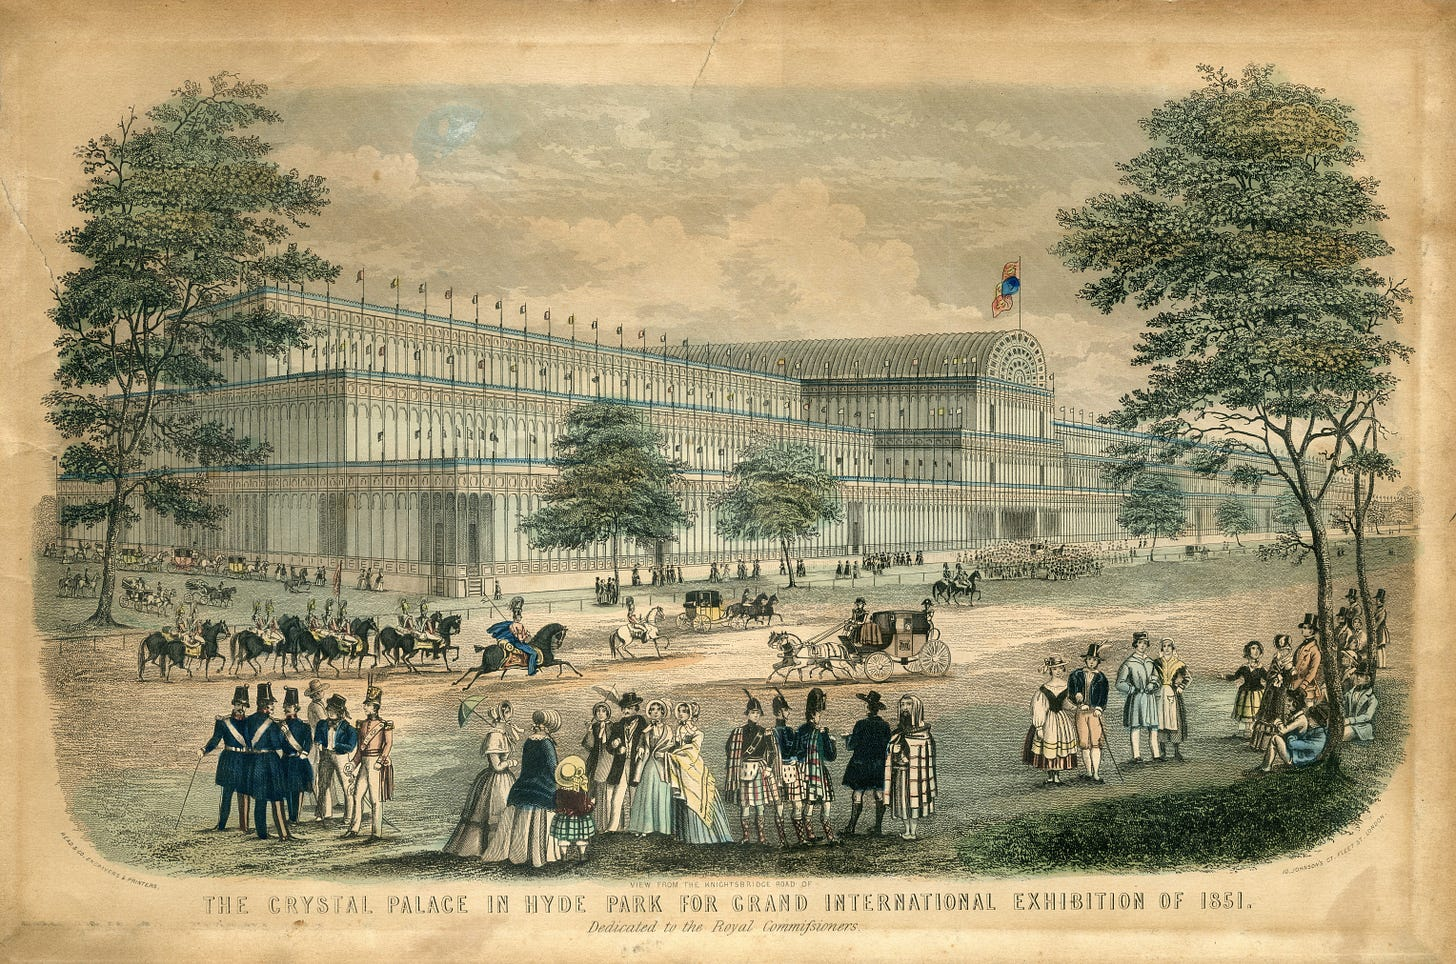 Enormous iron and glass greenhouse with Victorian people and horses outside